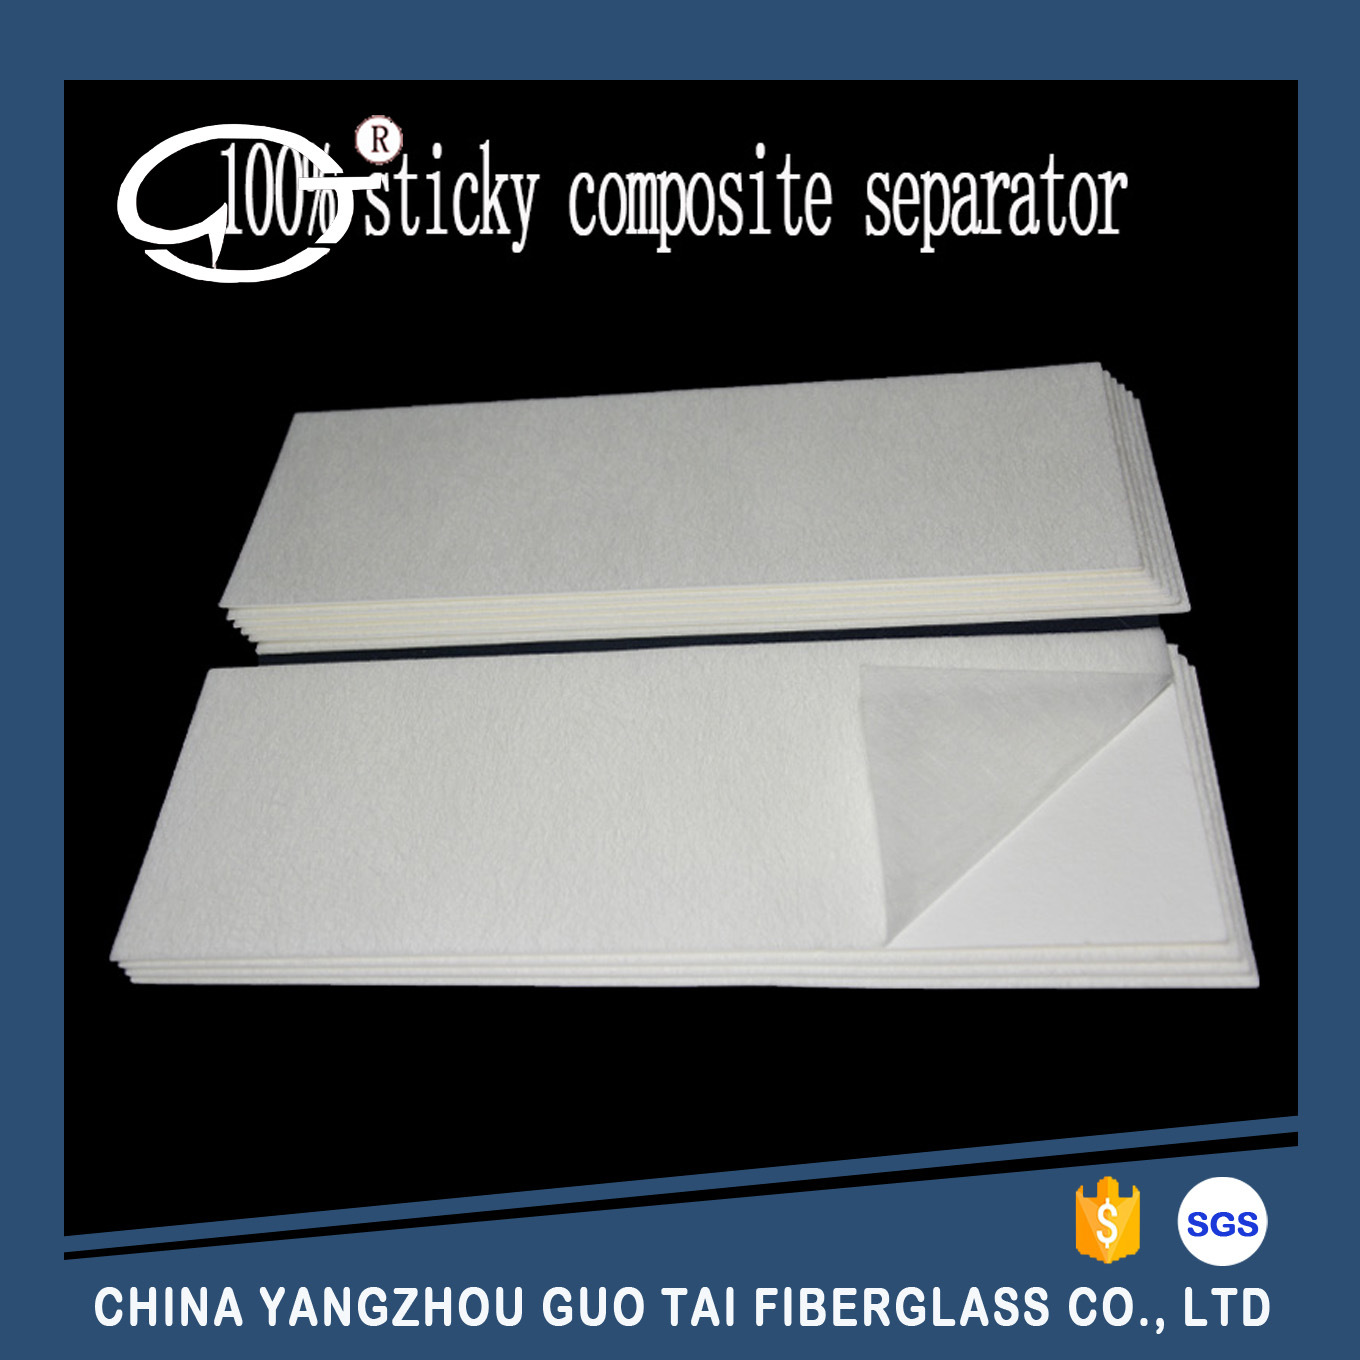 High Quality 100% Sticked Composite Fiberglass Battery Separator for Lead-Acid Battery